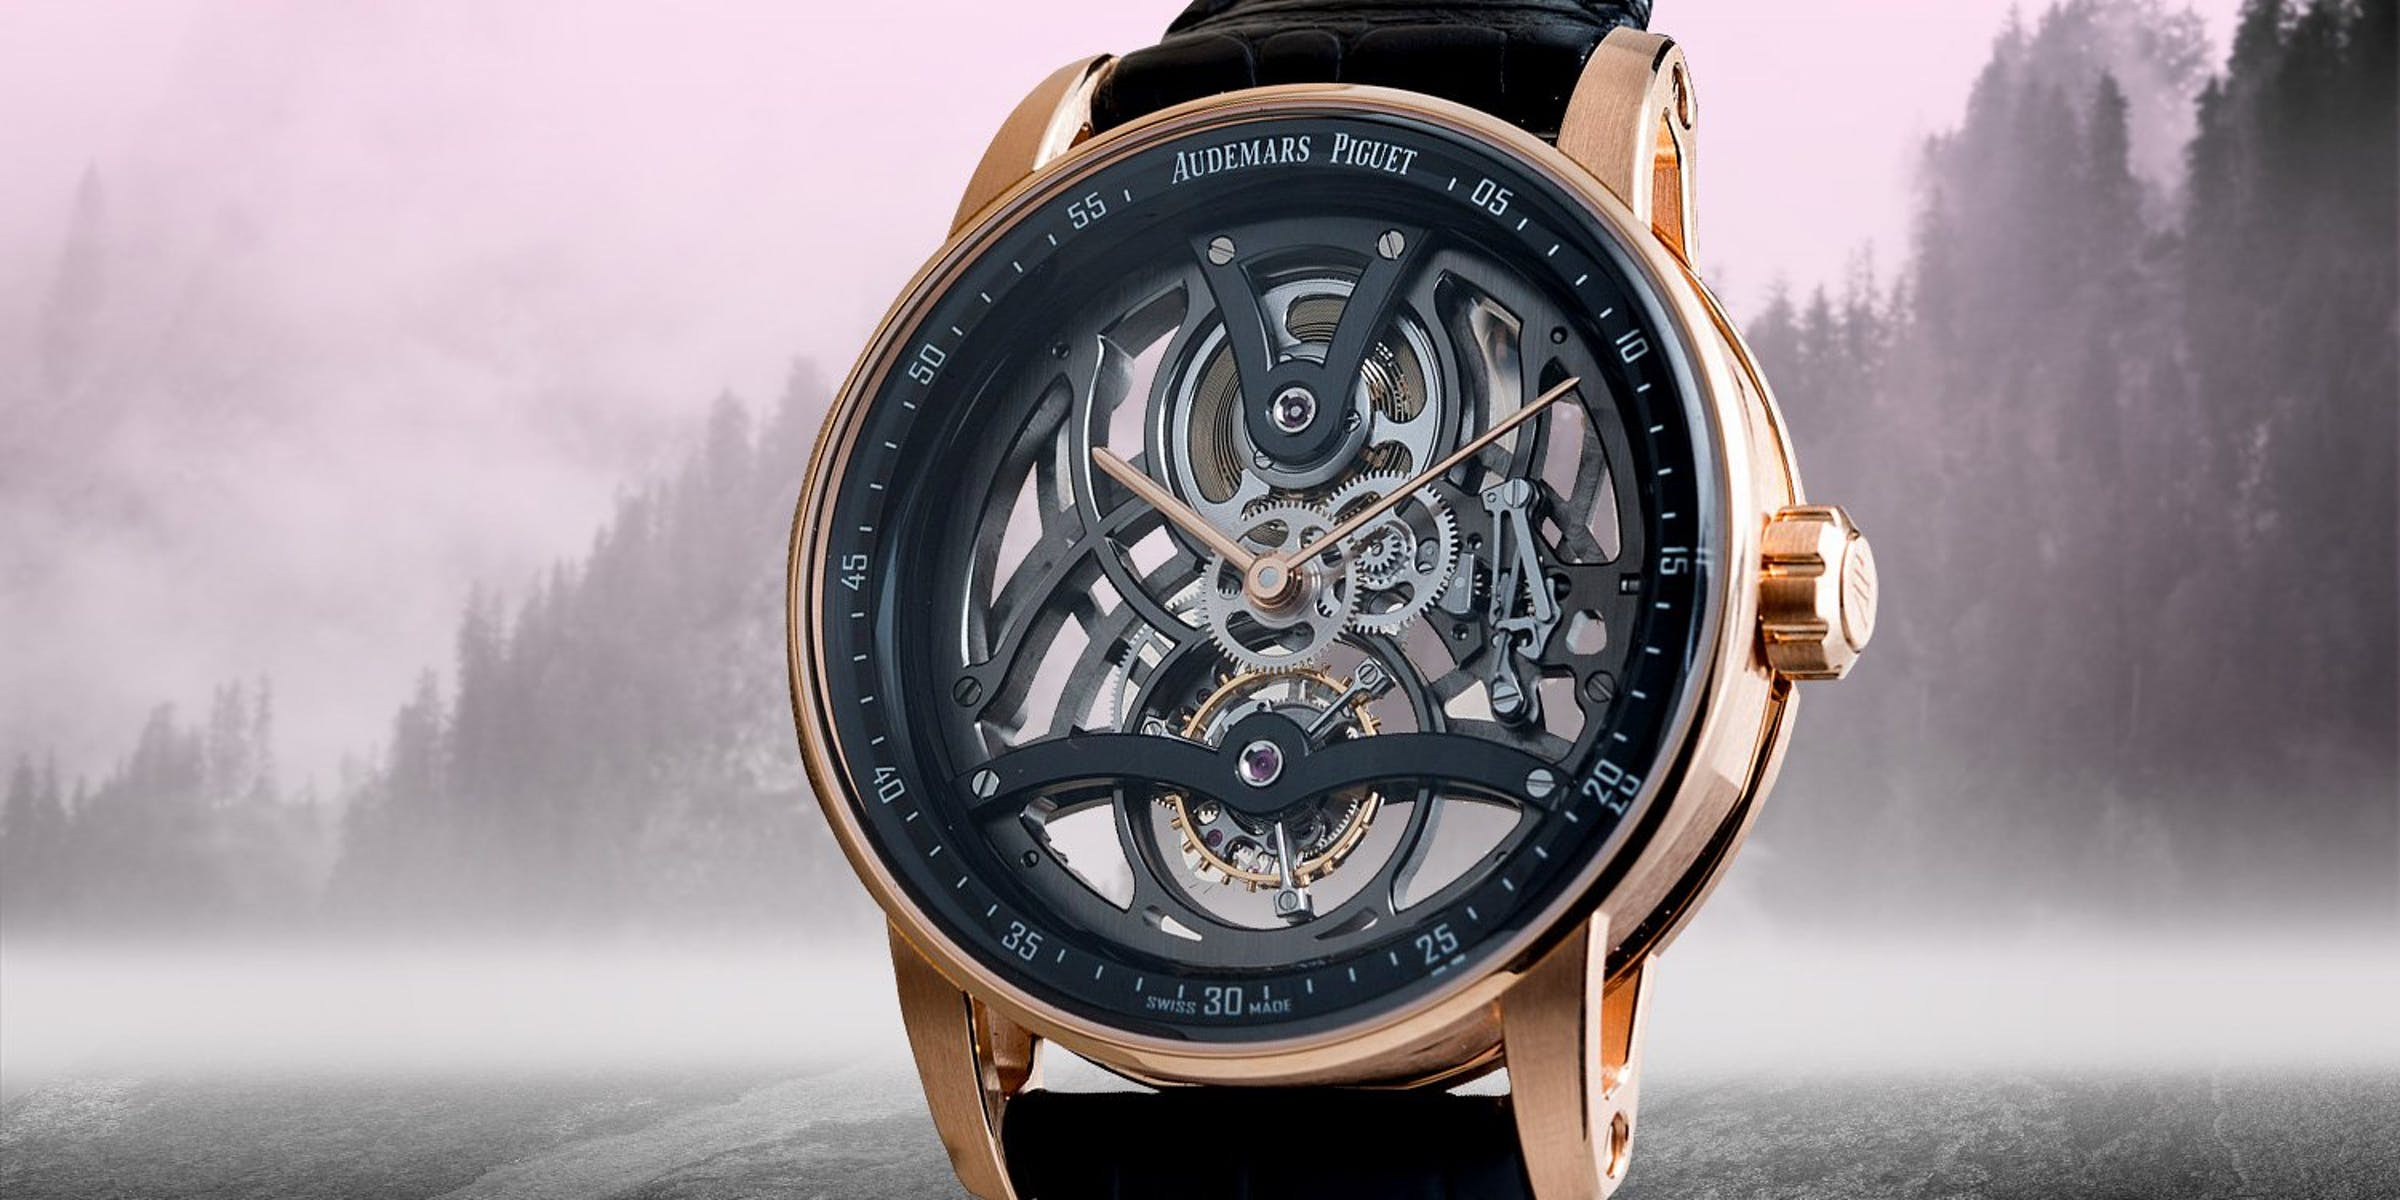 More Than a Century of High-End Watchmaking with Audemars Piguet